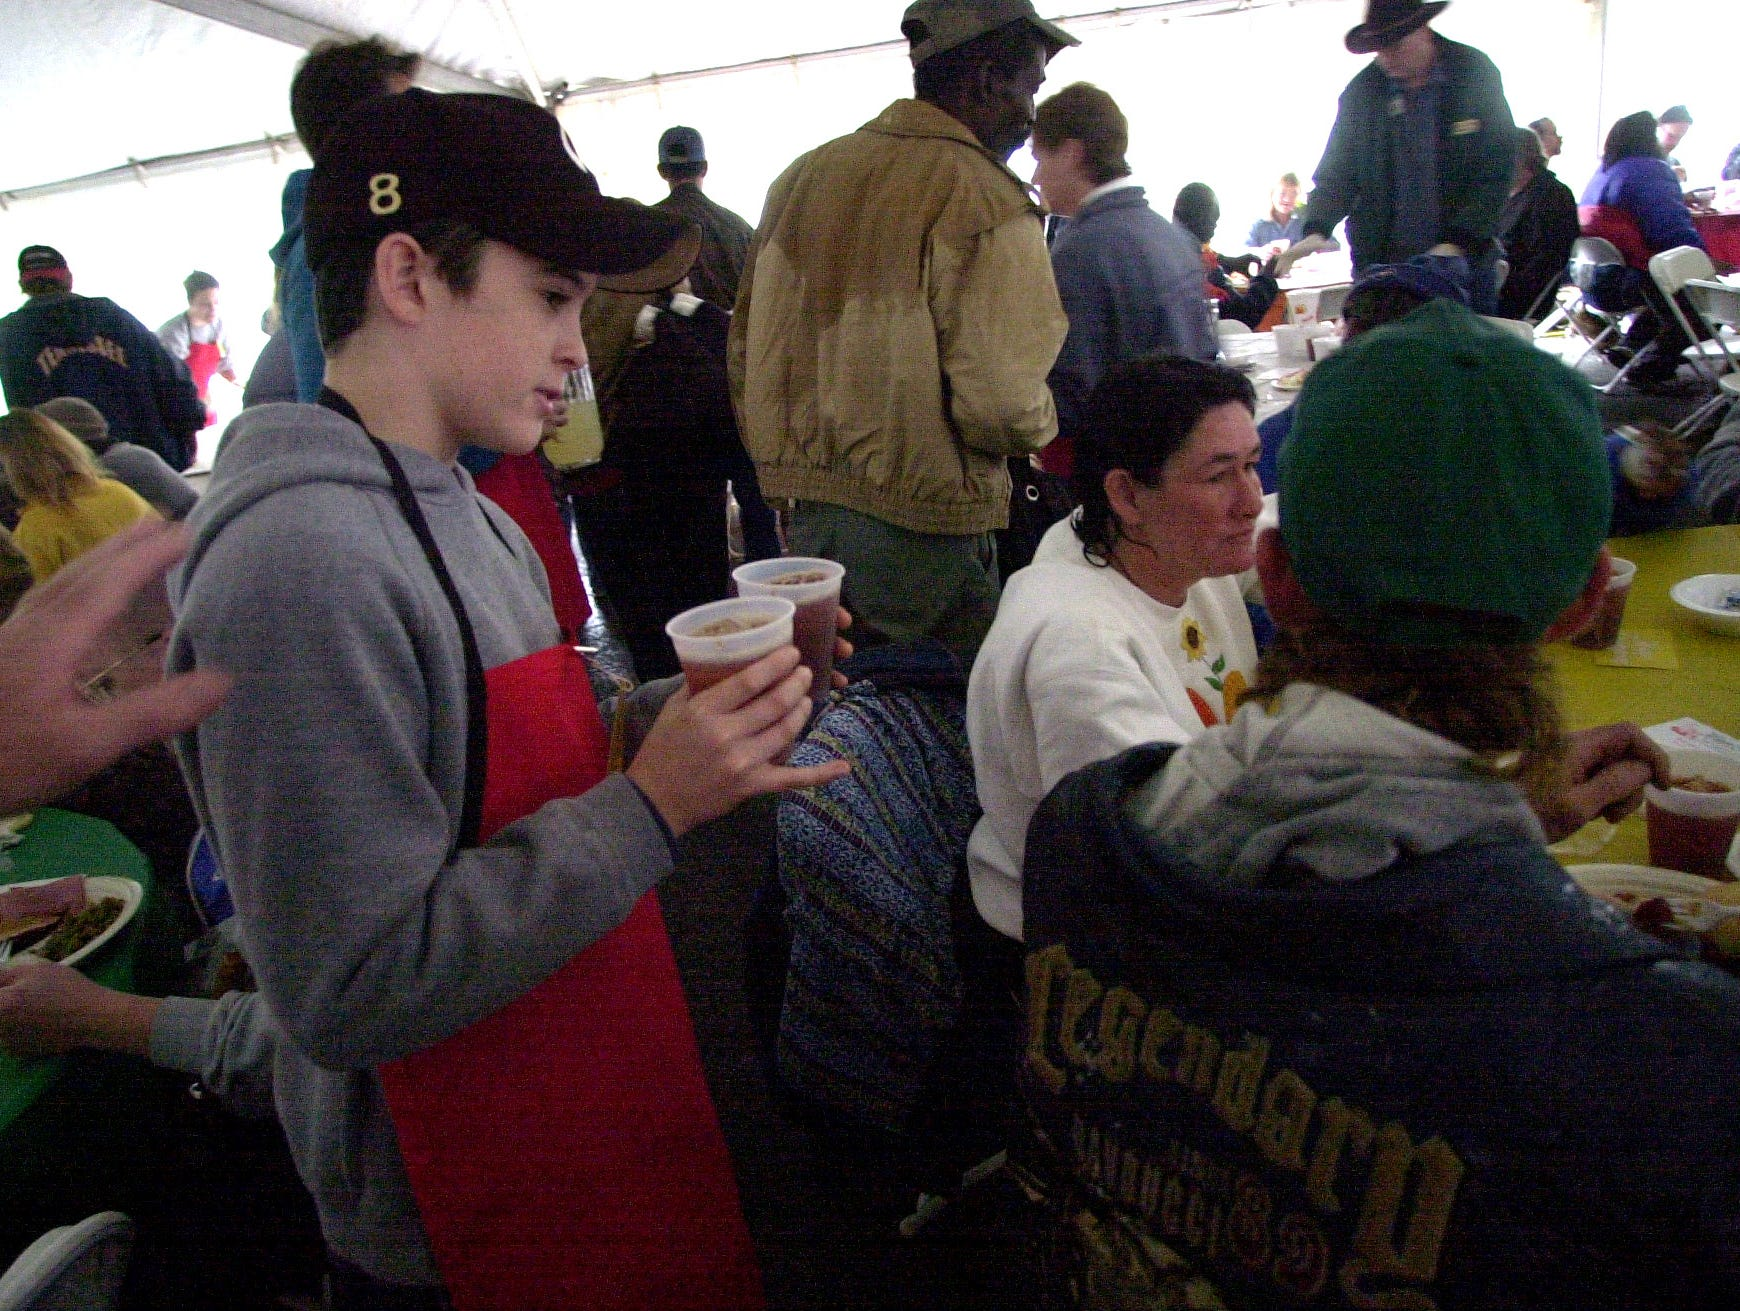 Justin Hobby passes out drinks as a volunteer during the Knoxville Area Rescue Ministries annual Thanksgiving Day meal.